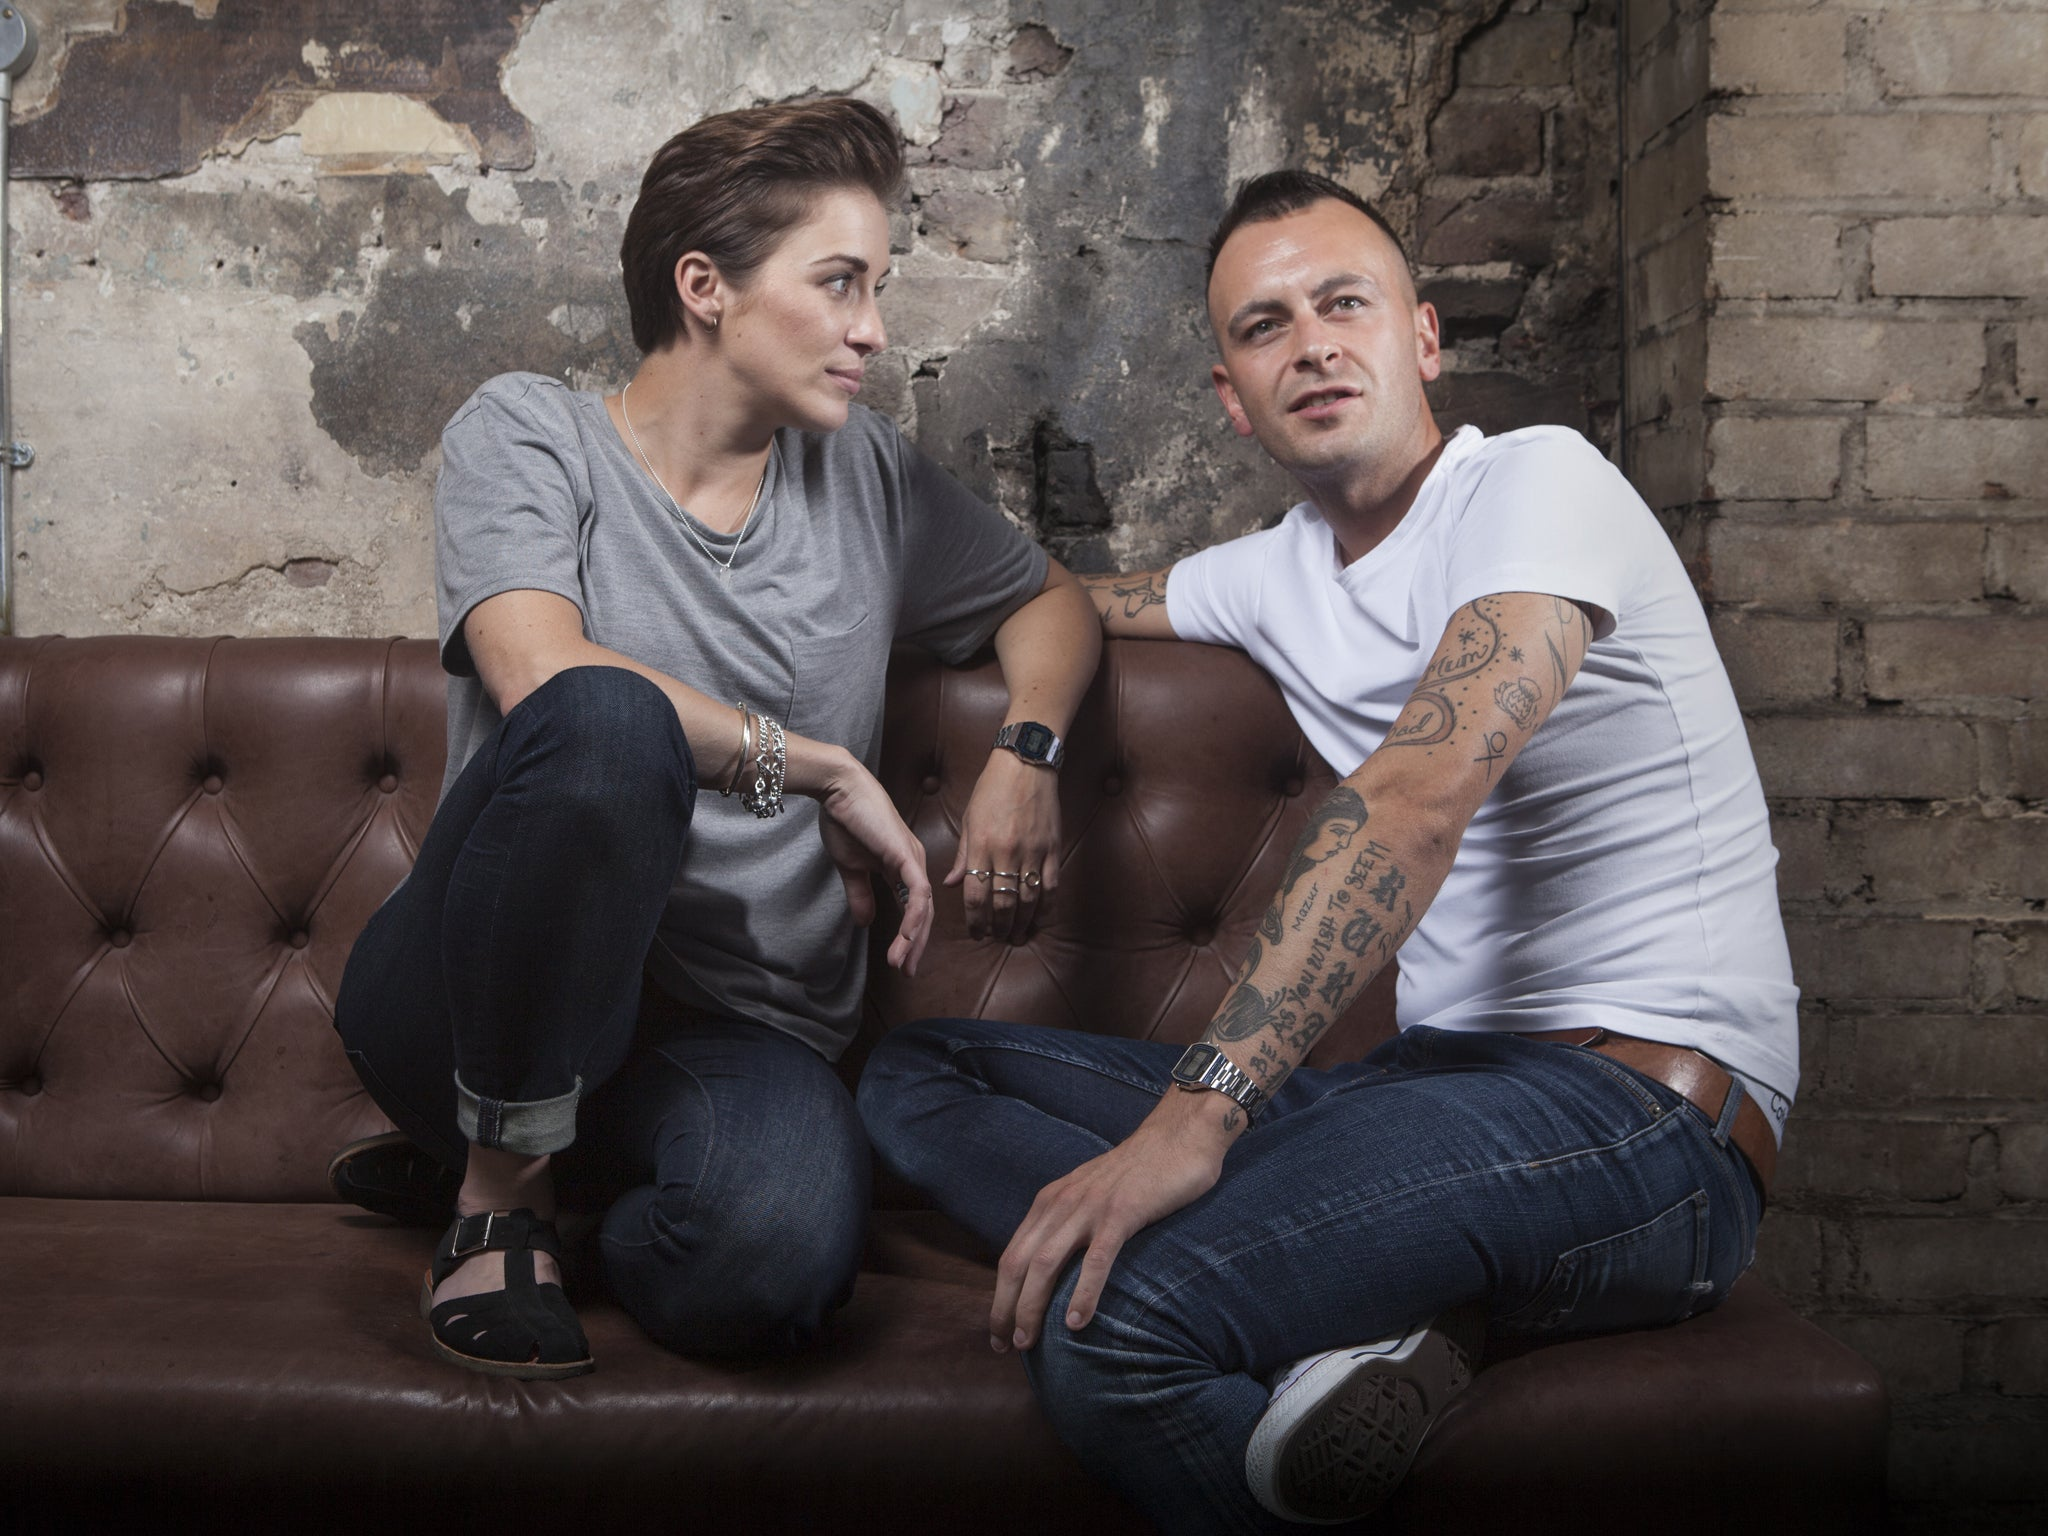 Joseph gilgun and vicky mcclure dating. first online dating site history of my computer.